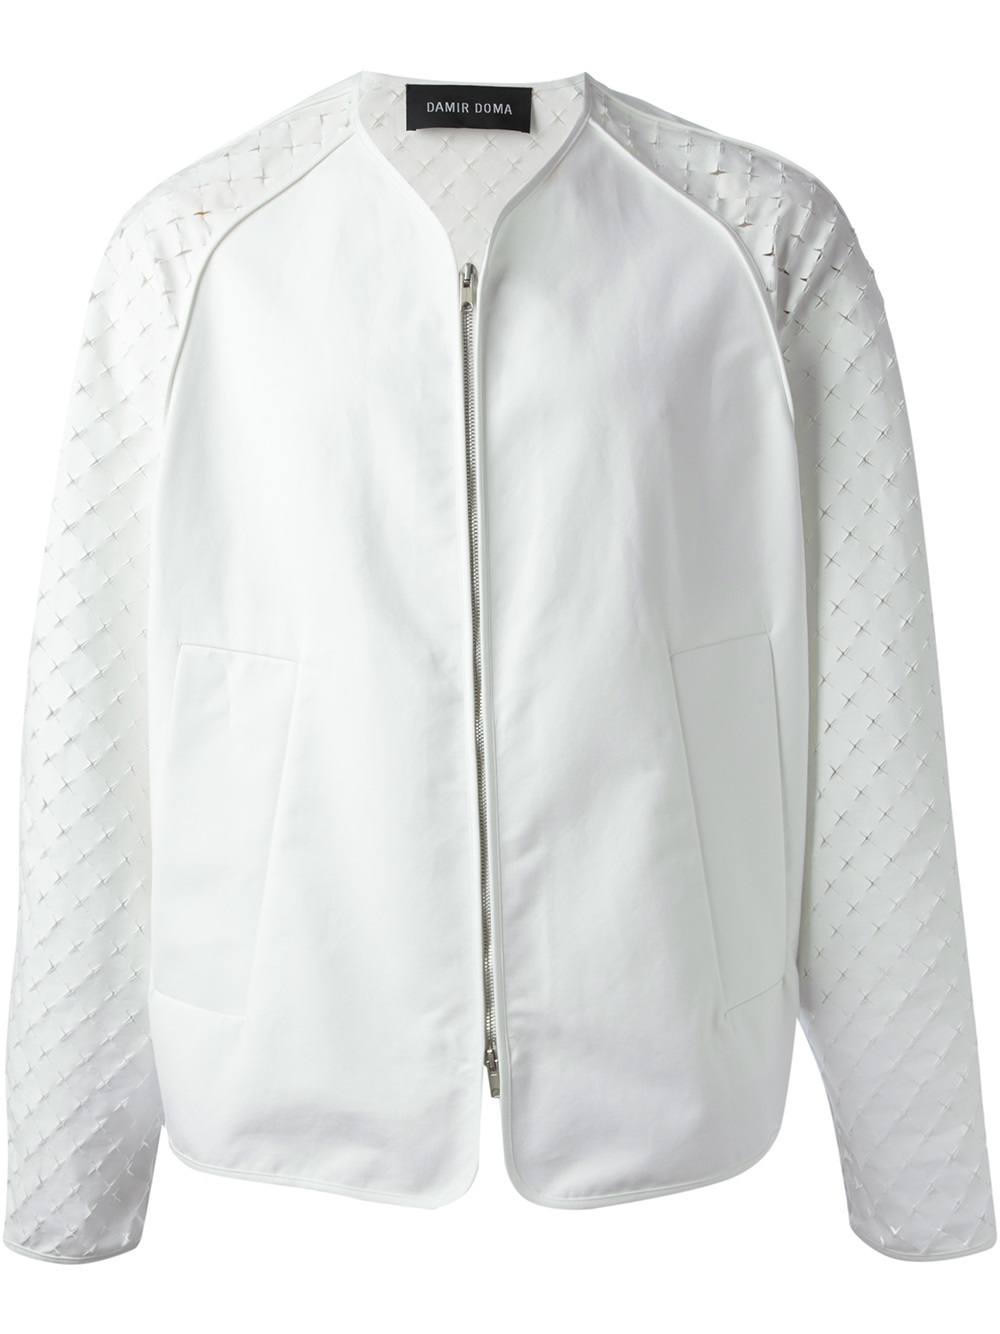 Damir doma Janusia Bomber Jacket in White for Men | Lyst